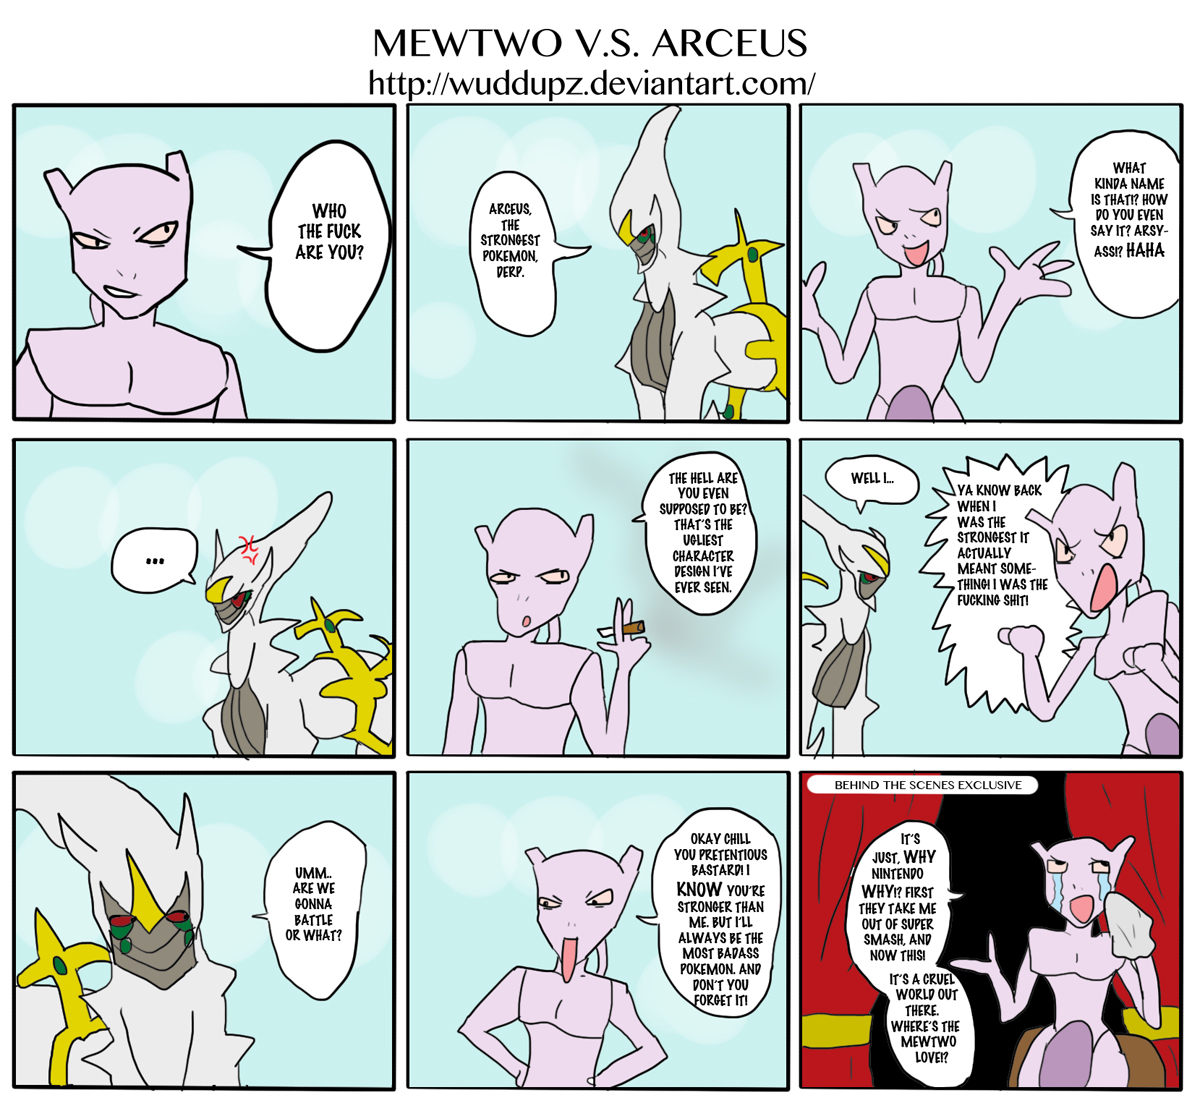 Creating this, 'cause we needs activities. Mewtwo_vs_arceus_comic_by_wuddupz-d4llxh8